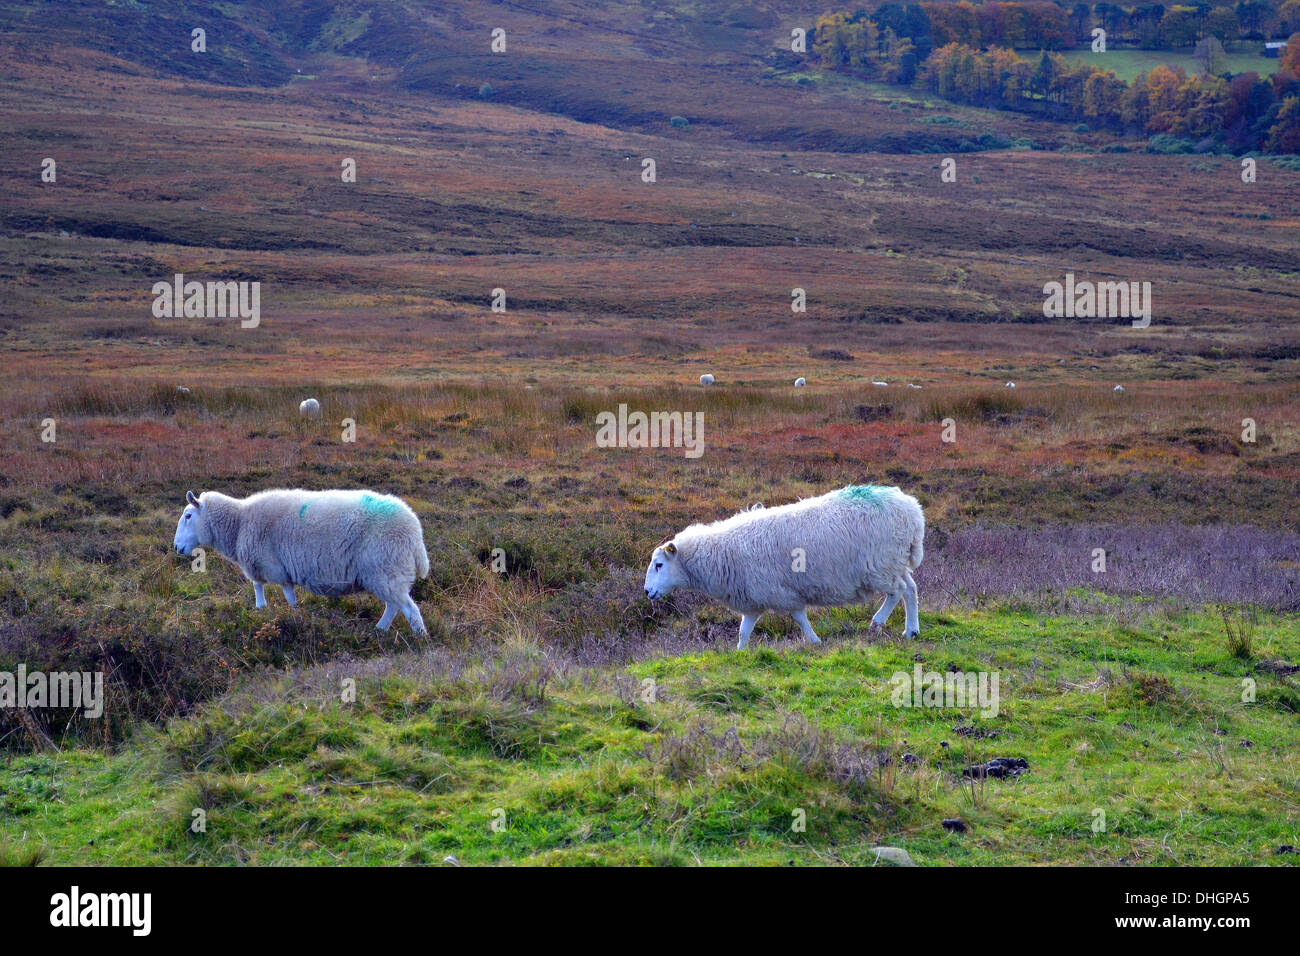 Two sheep in the Wicklow Hills Ireland - Stock Image